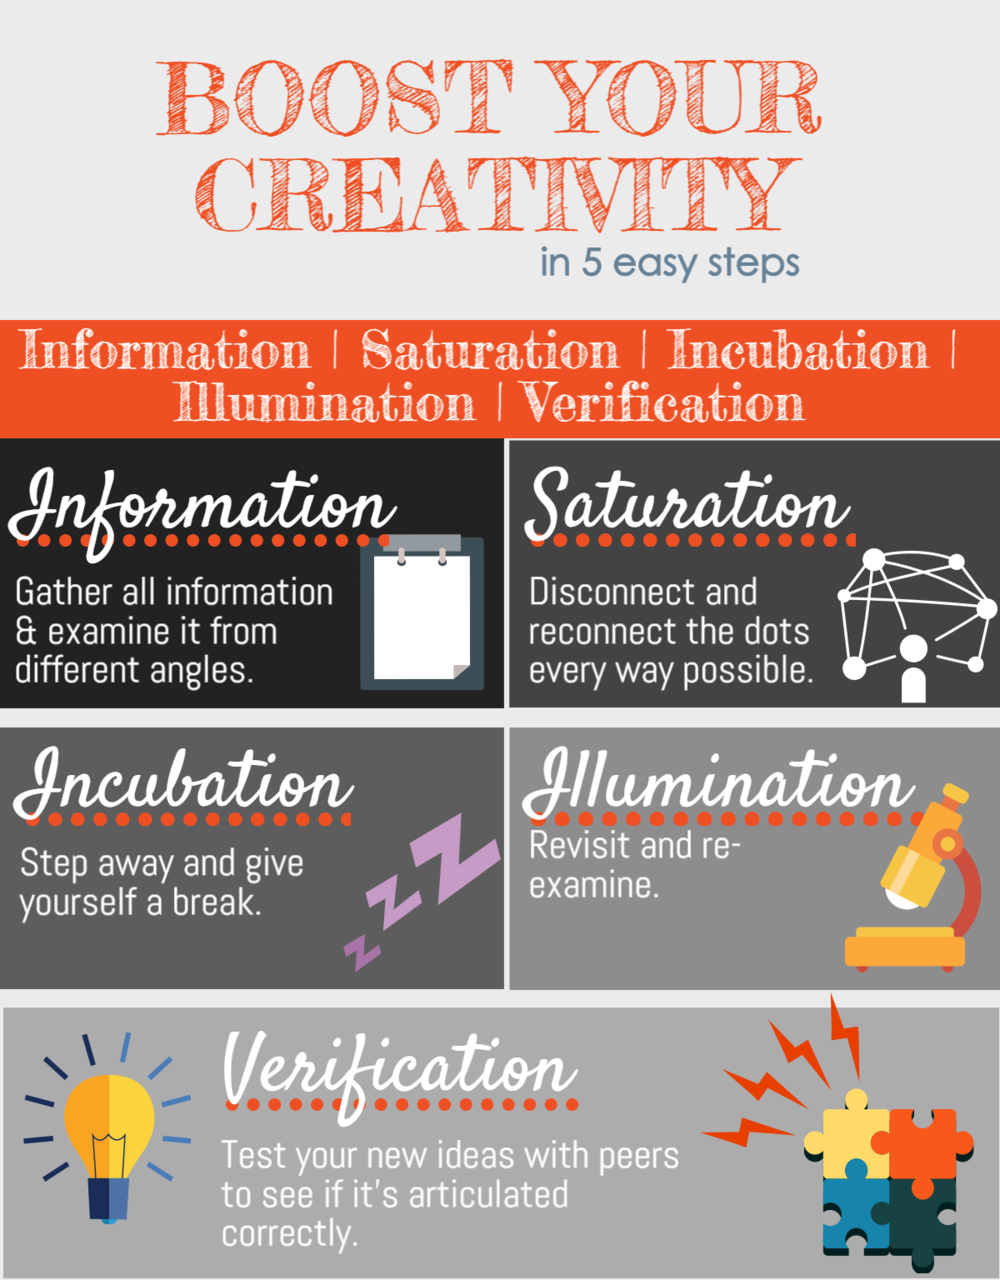 How to Boost Your Creativity - infographic